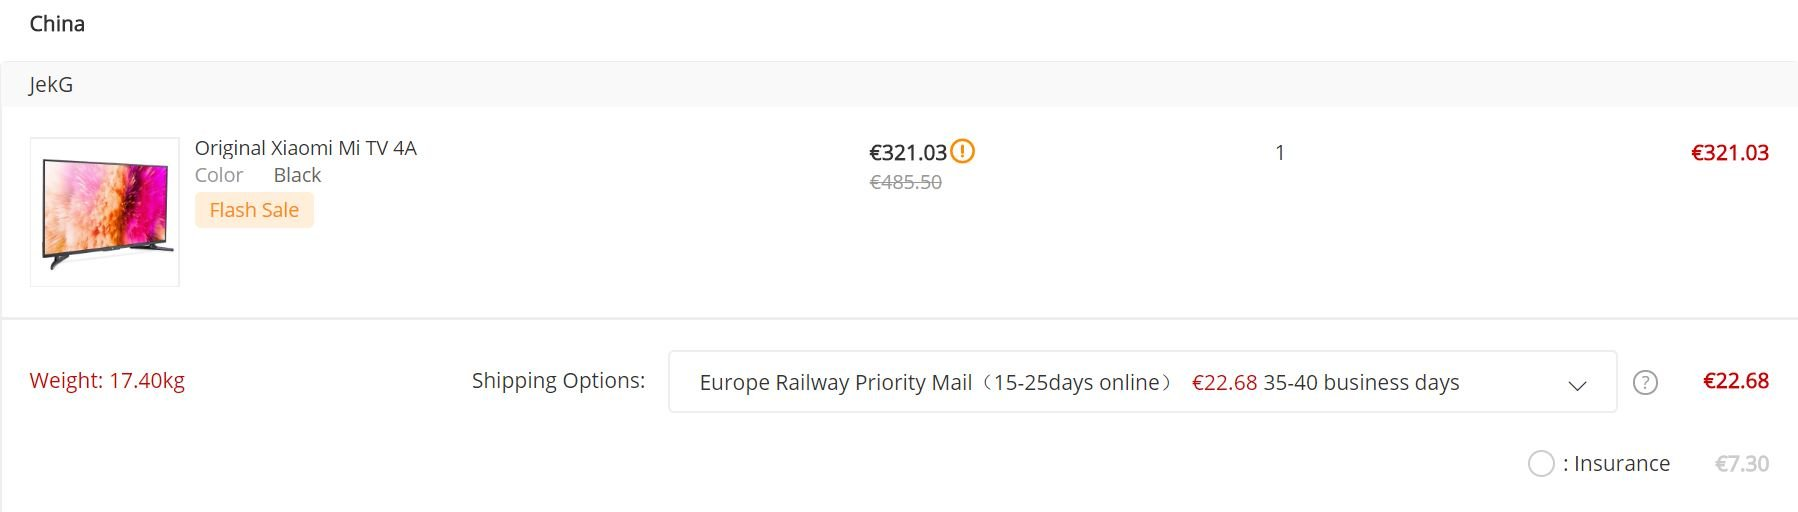 Gearbest Europe Railway Priority Mail